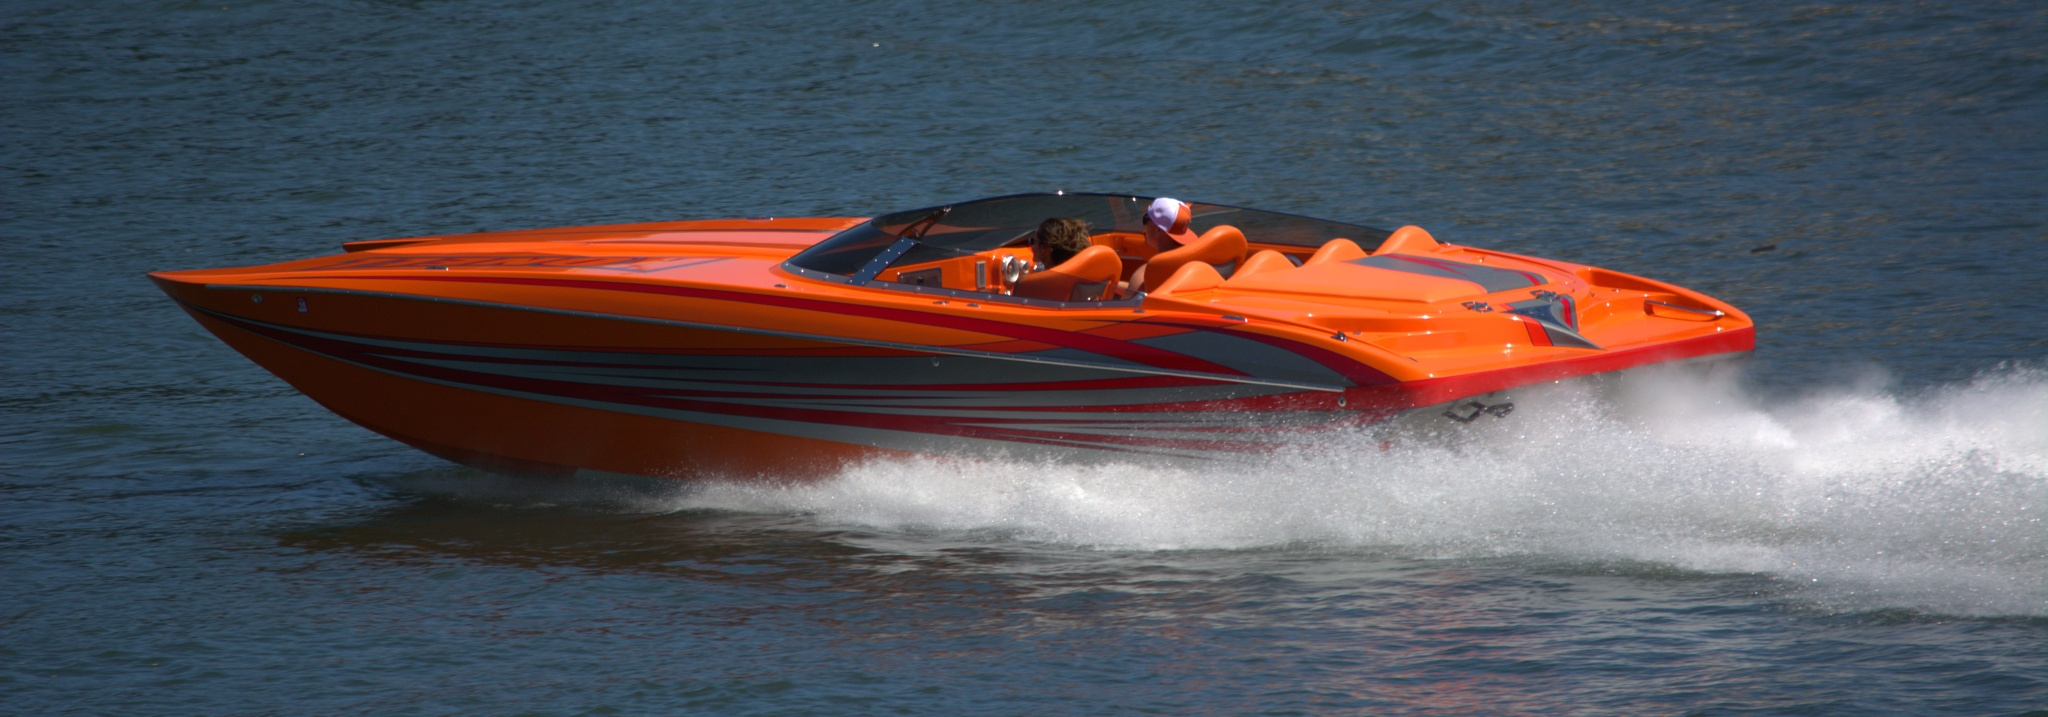 Photo in Sports #boat #recreation #fast #speed #speedboat #water #river #splash #awesome